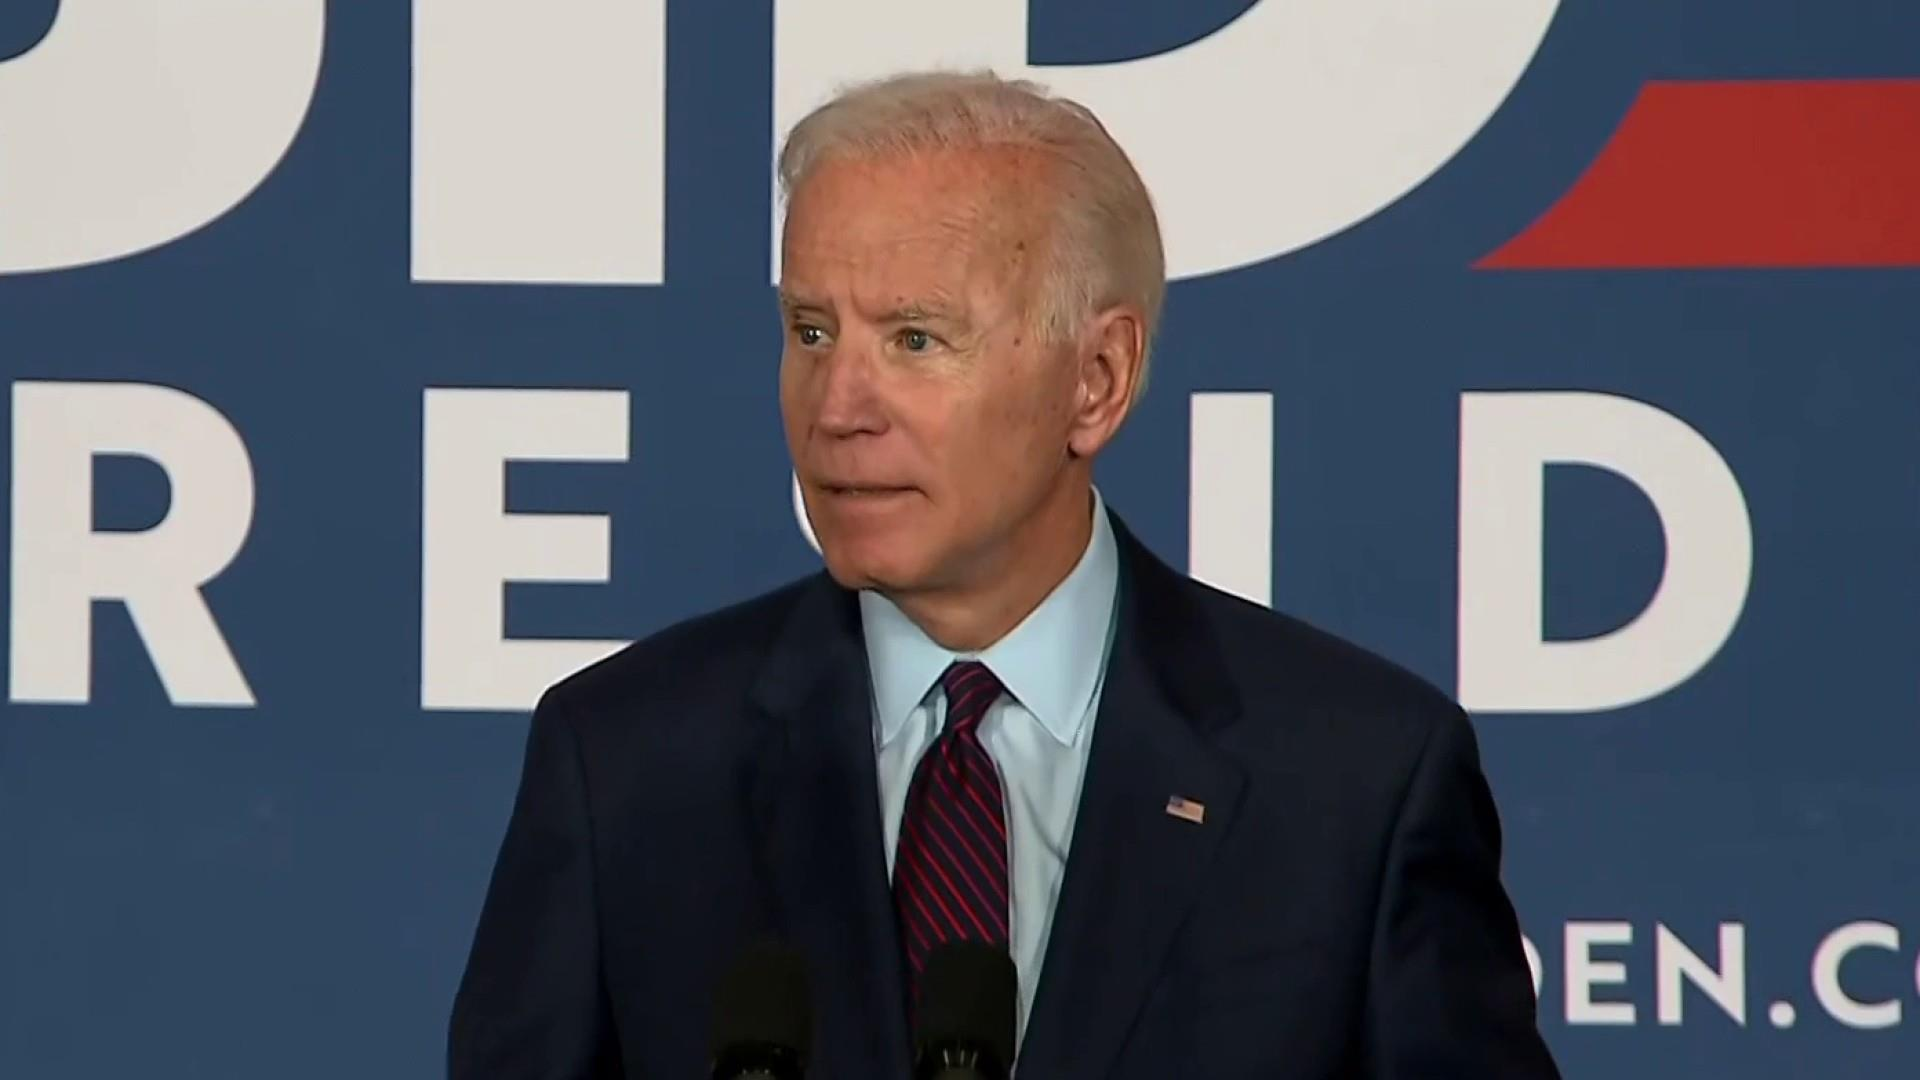 Biden calls out Trump for lack of 'moral leadership'